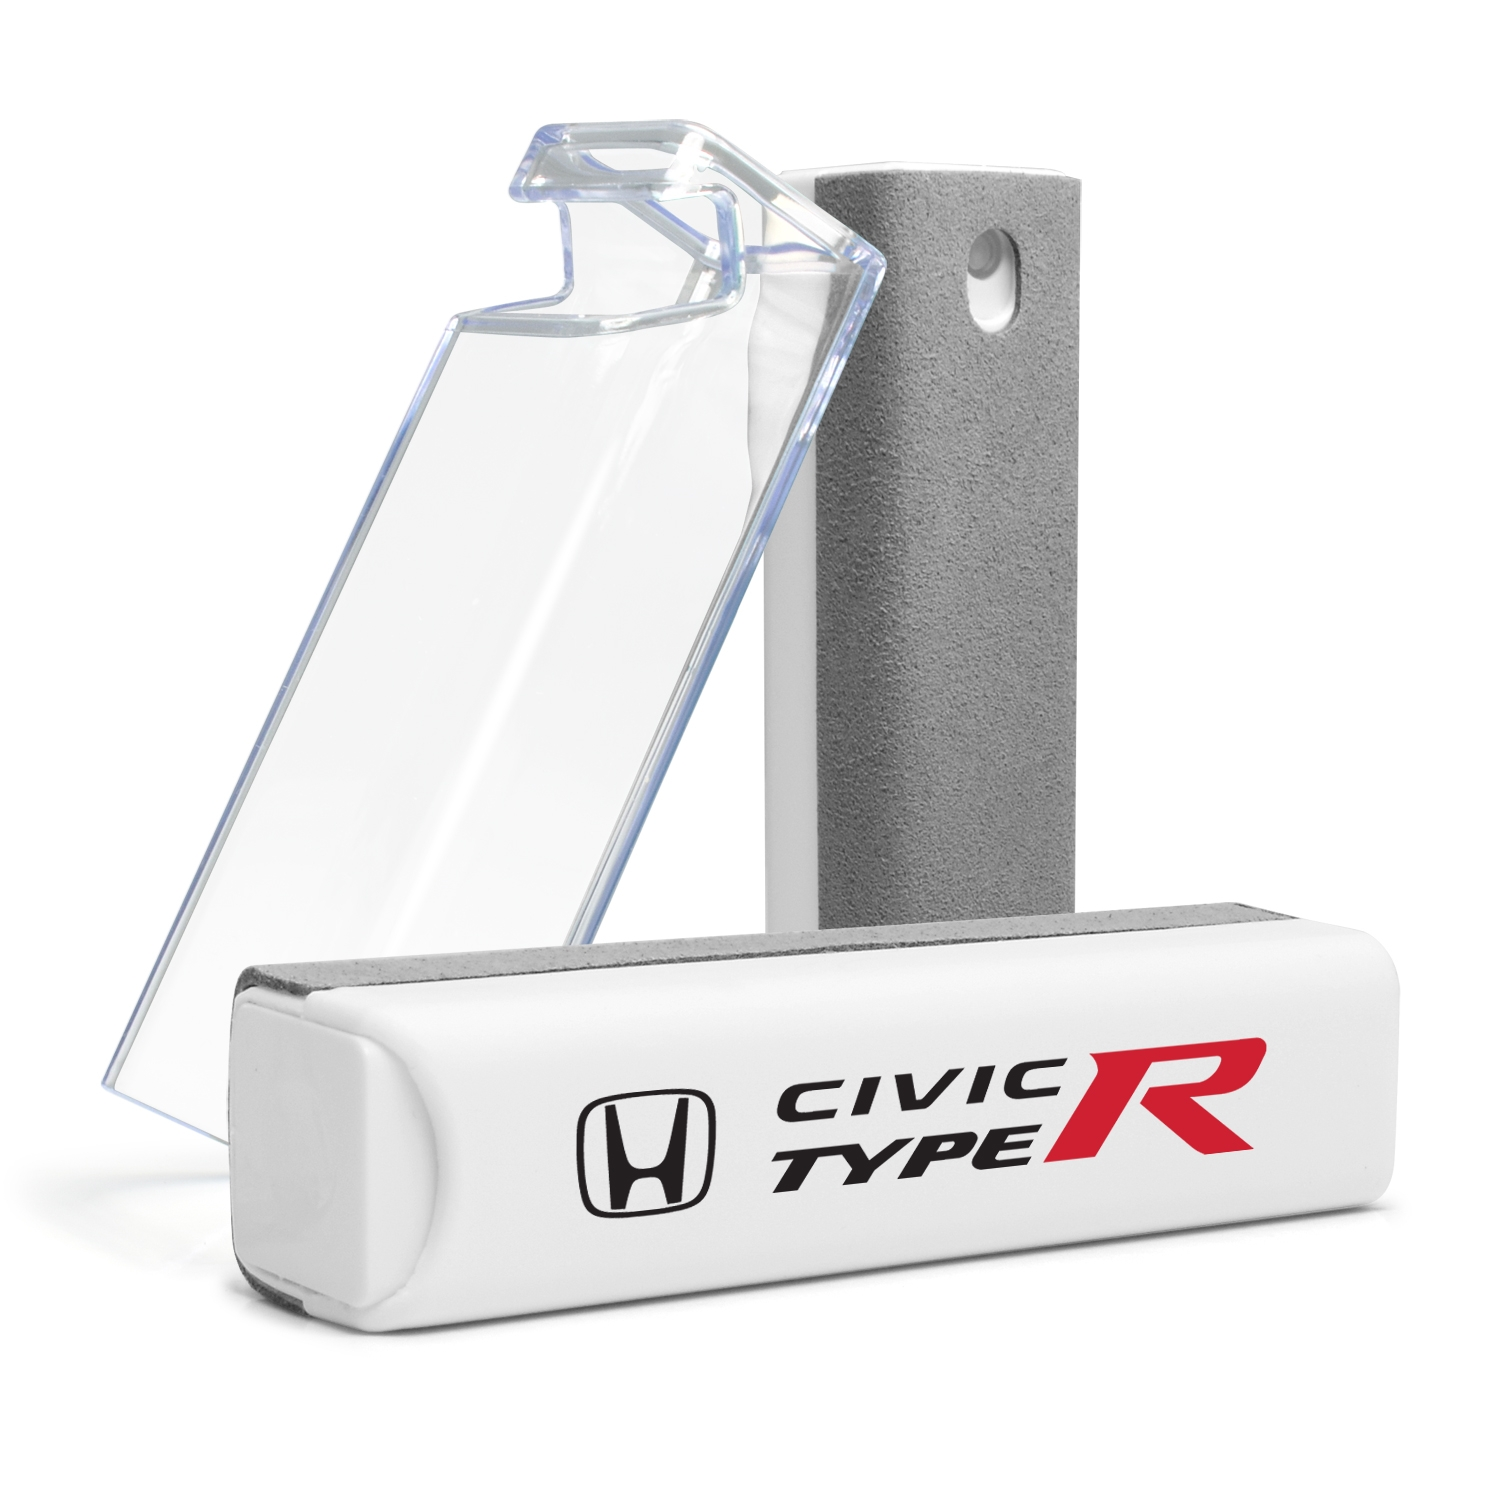 Honda Civic Type-R All-in-One Gray Wipe Navigation Screen Cleaner with Clear Cell Phone Stand